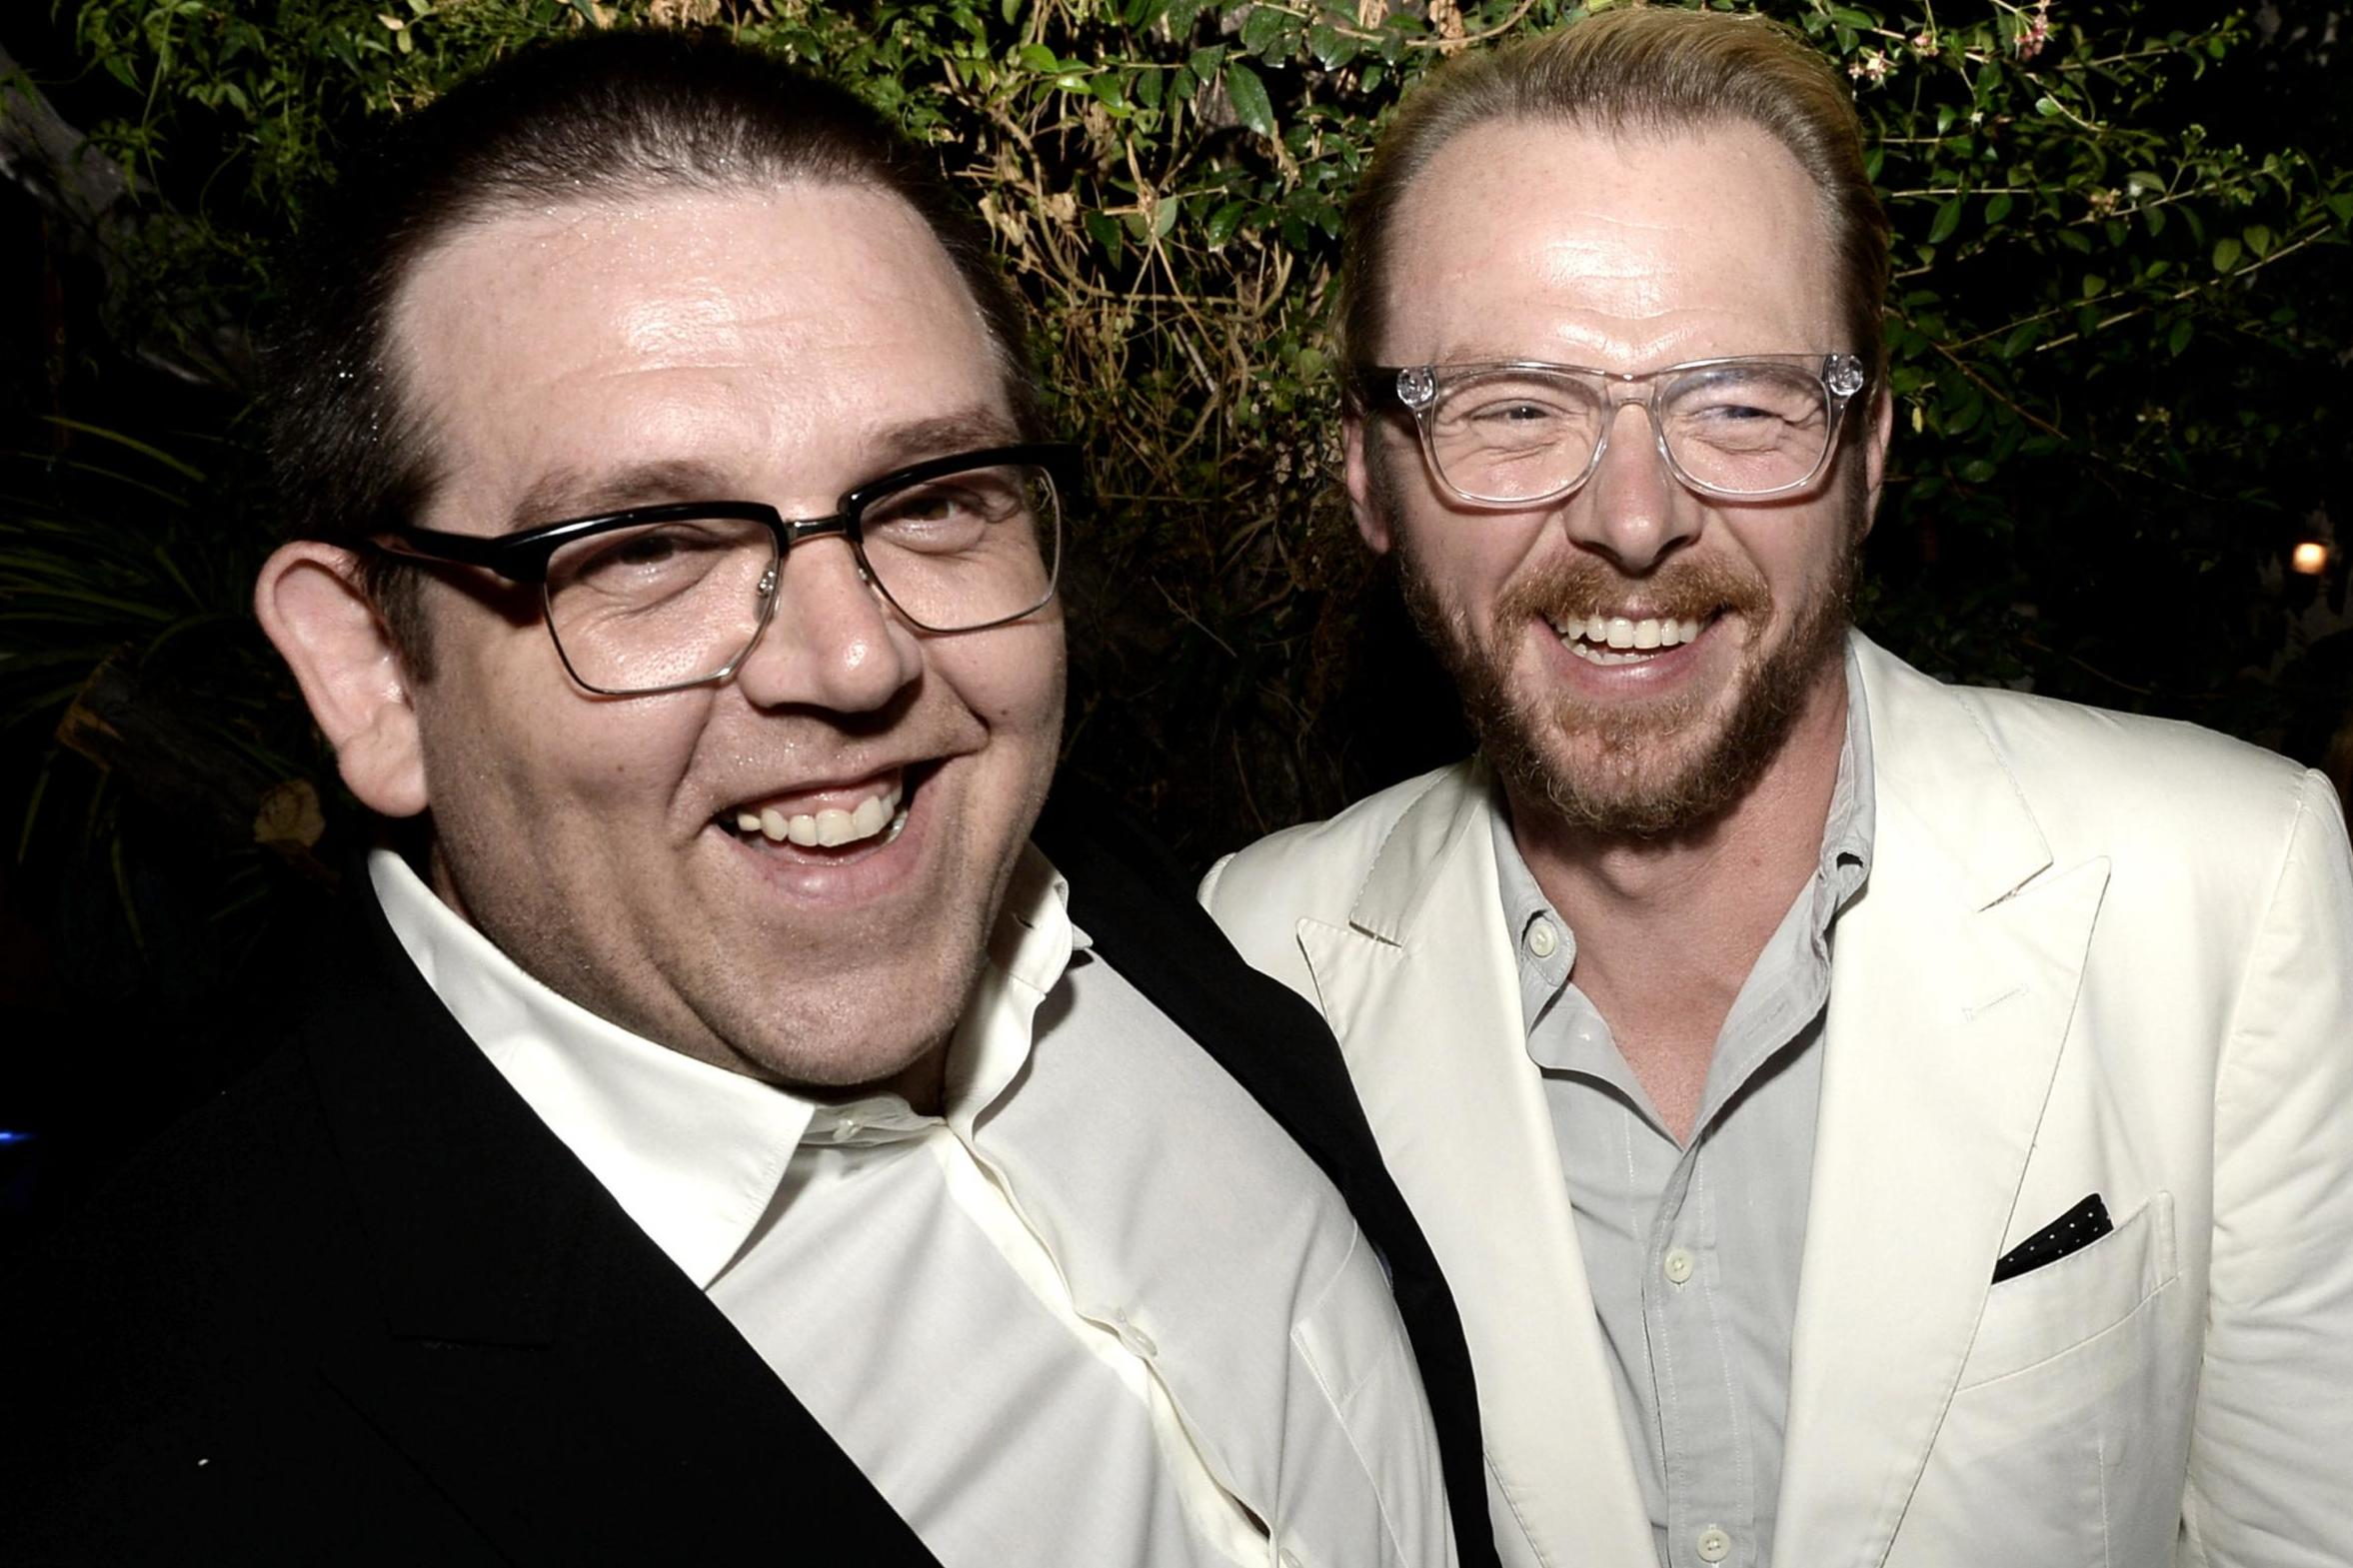 Simon Pegg and Nick Frost to produce serial killer film titled Svalta